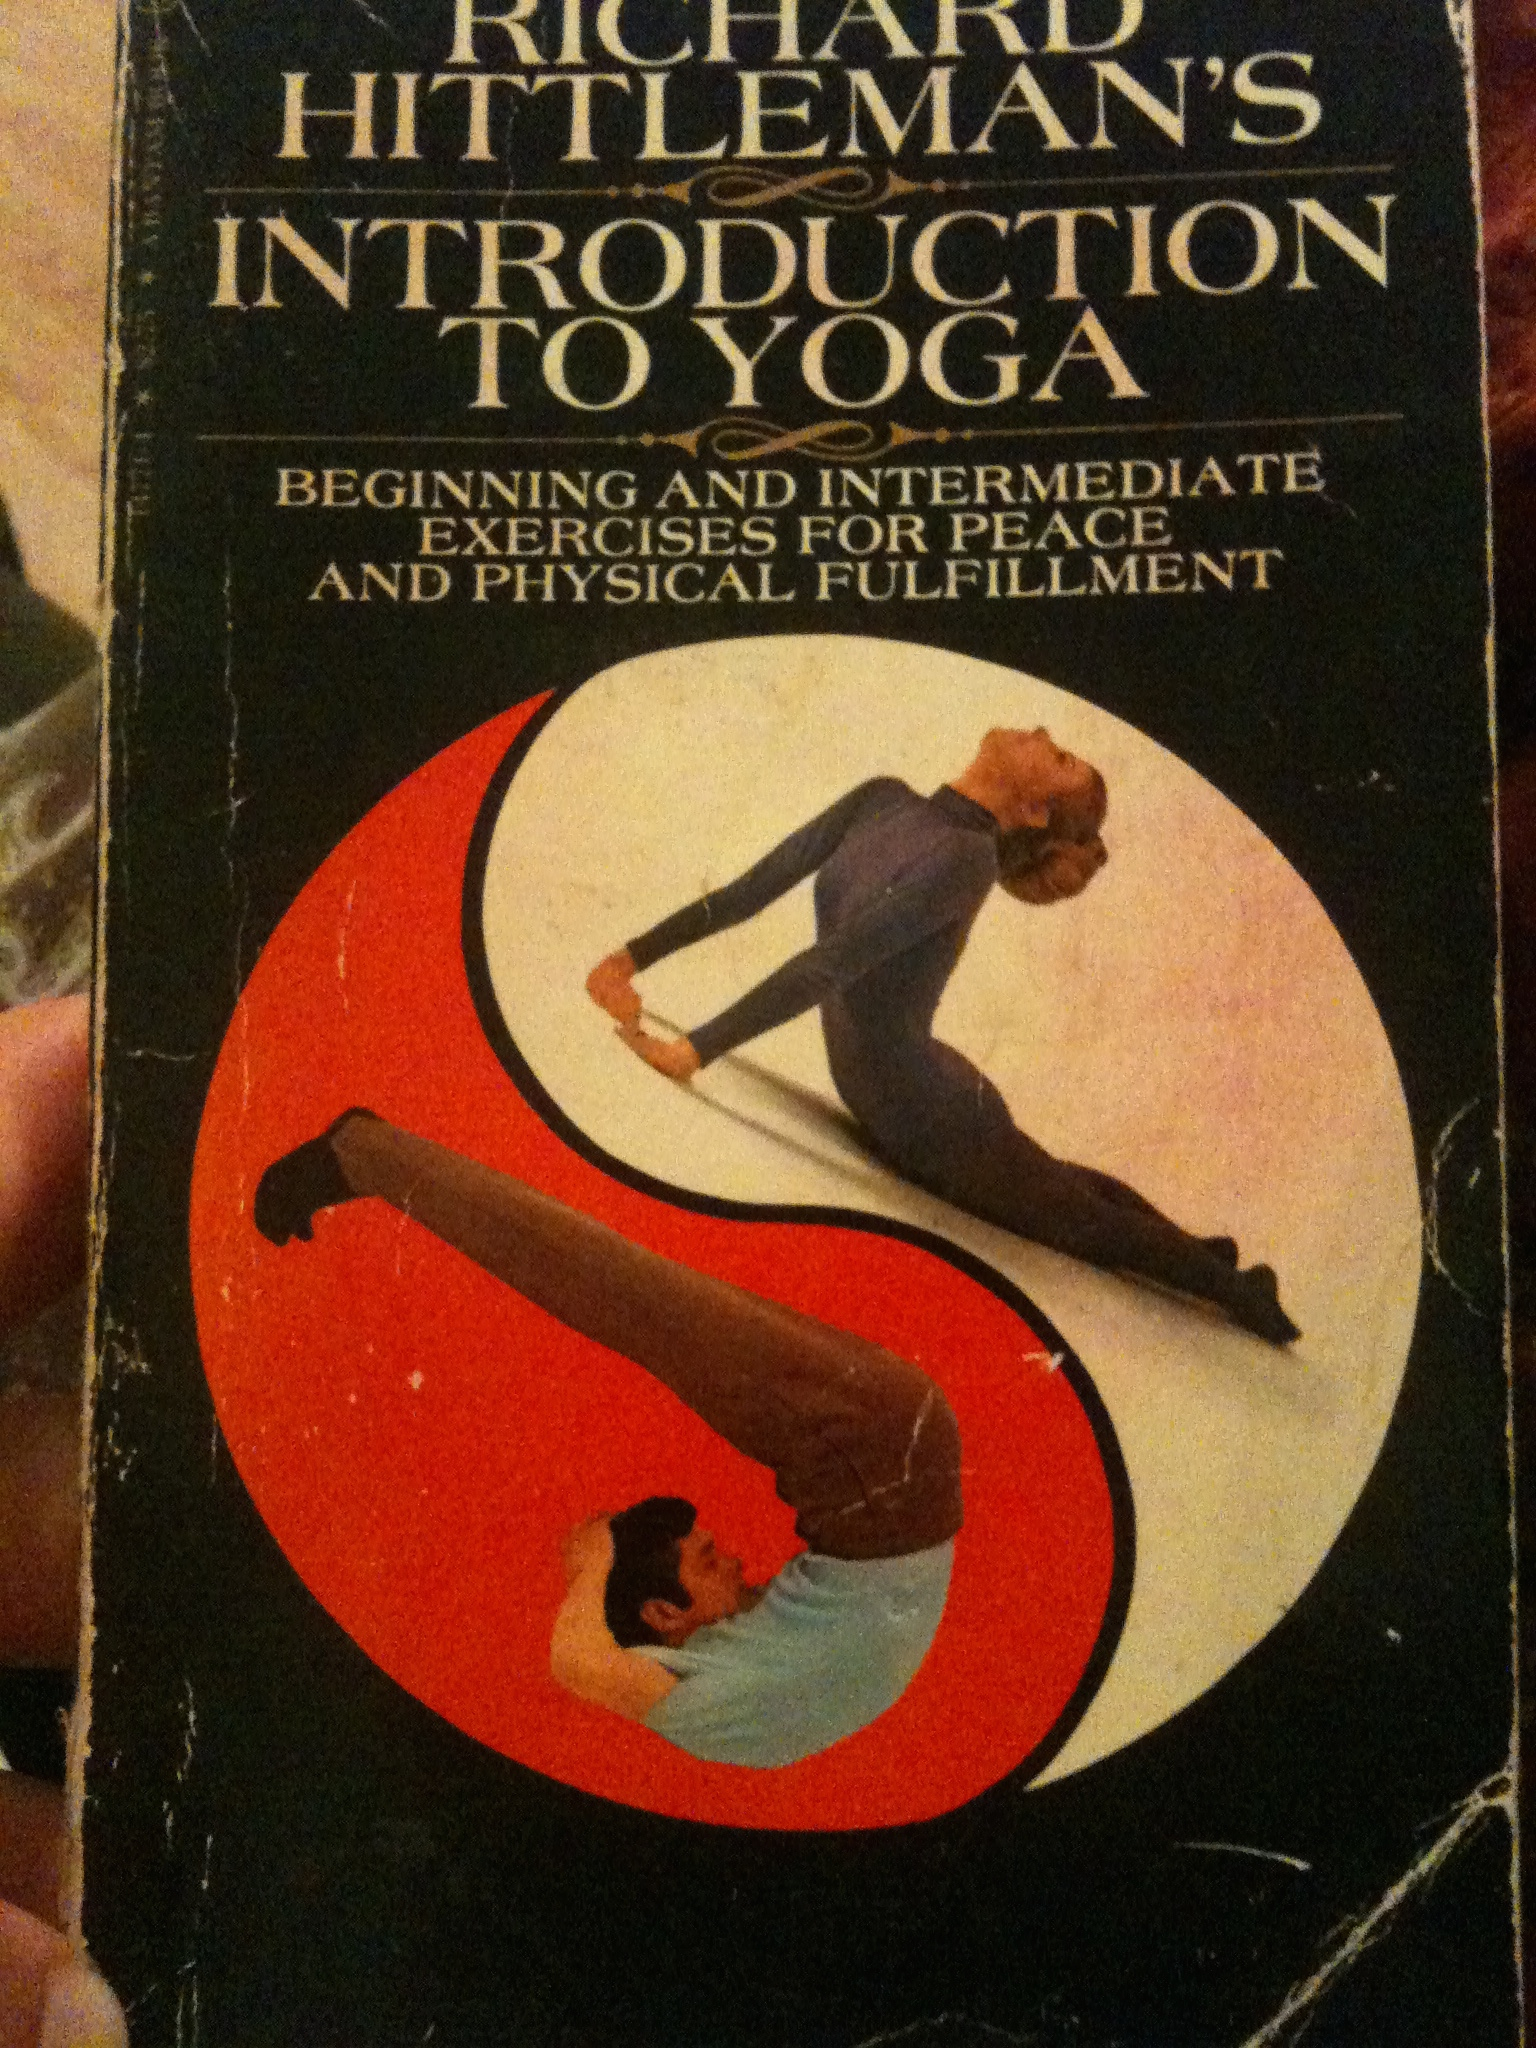 One of my first Yoga Books